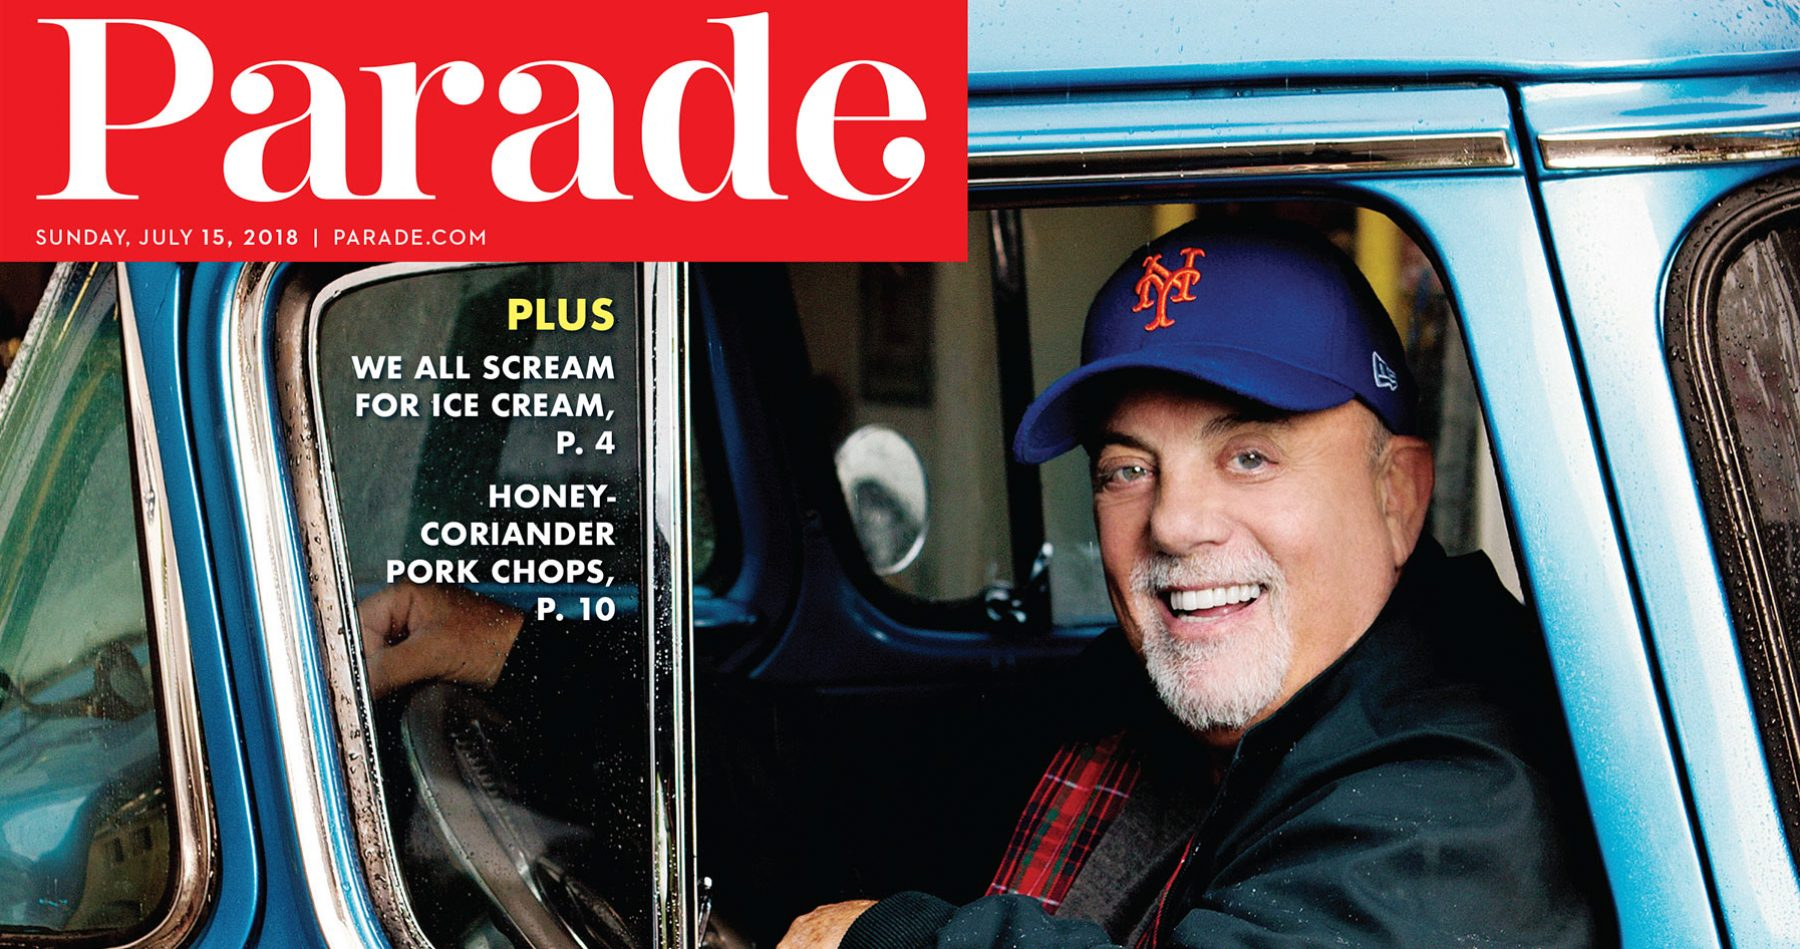 Billy Joel PARADE Magazine July 15, 2018 cover story